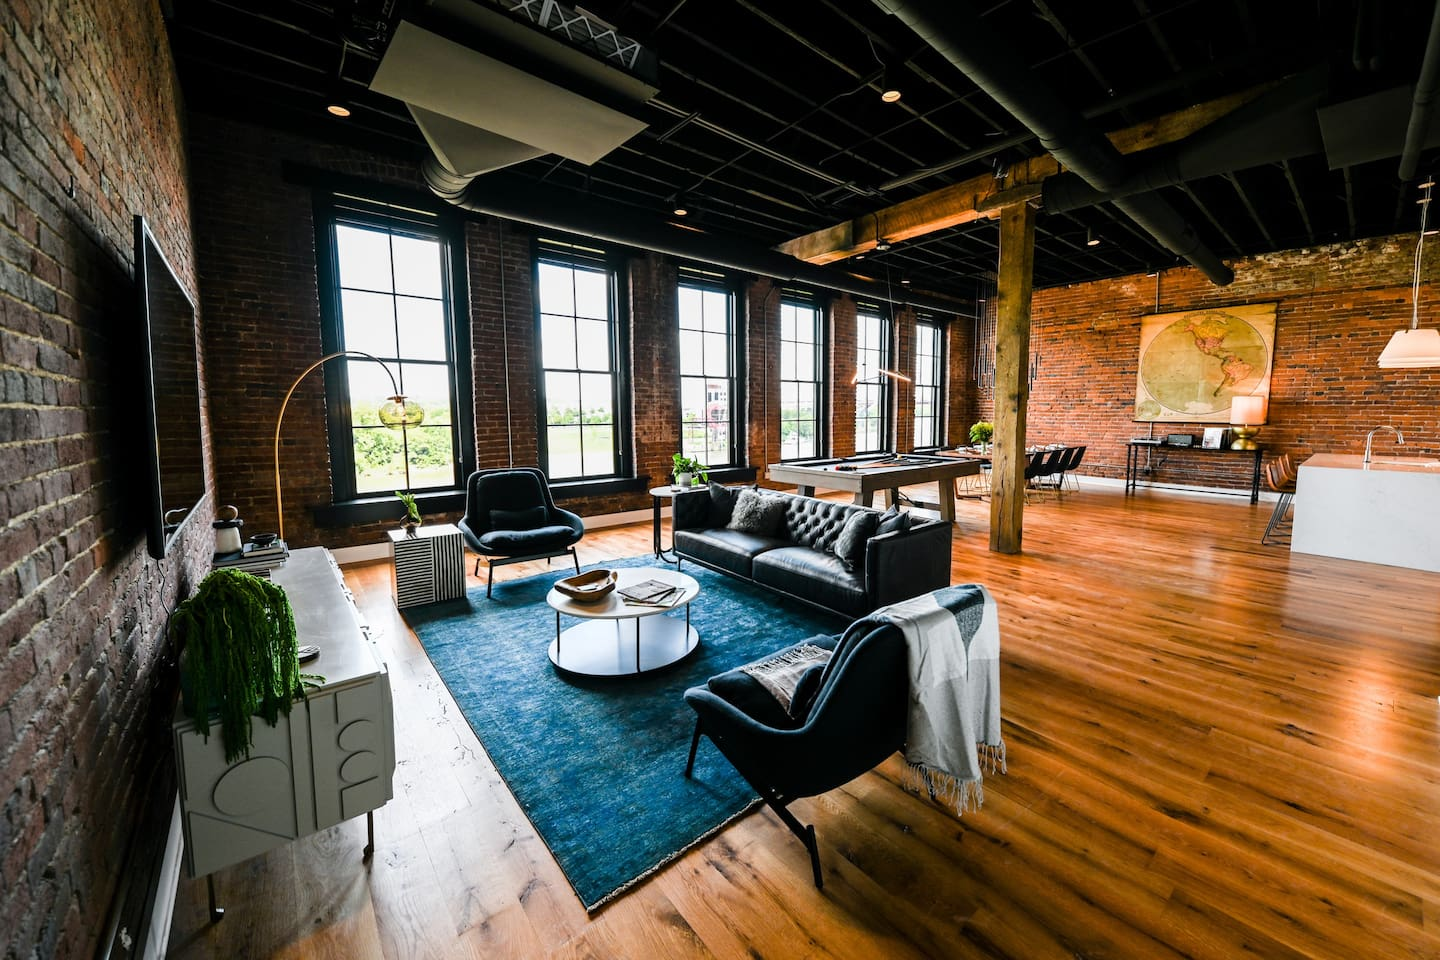 Riverside Unit with beautiful views of the RiverFront Park on the Cumberland River.